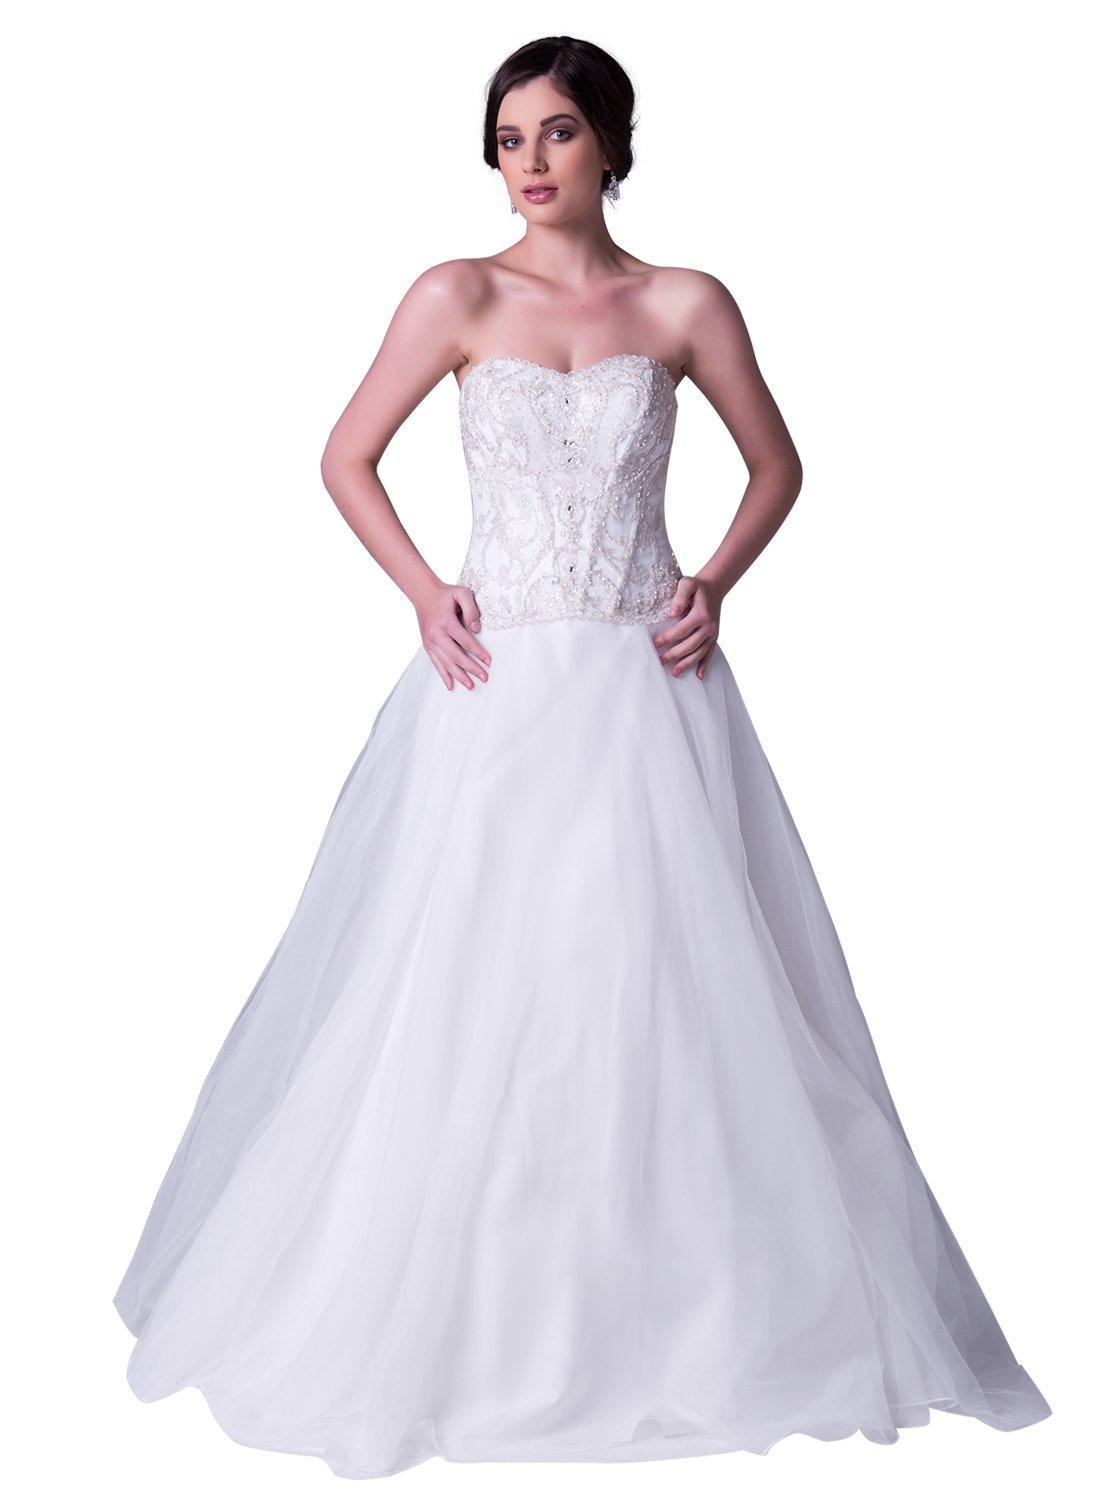 JOYNO BRIDE Women Ivory Strapless Beading Tulle A line Wedding Dress Gowns (2, Ivory)